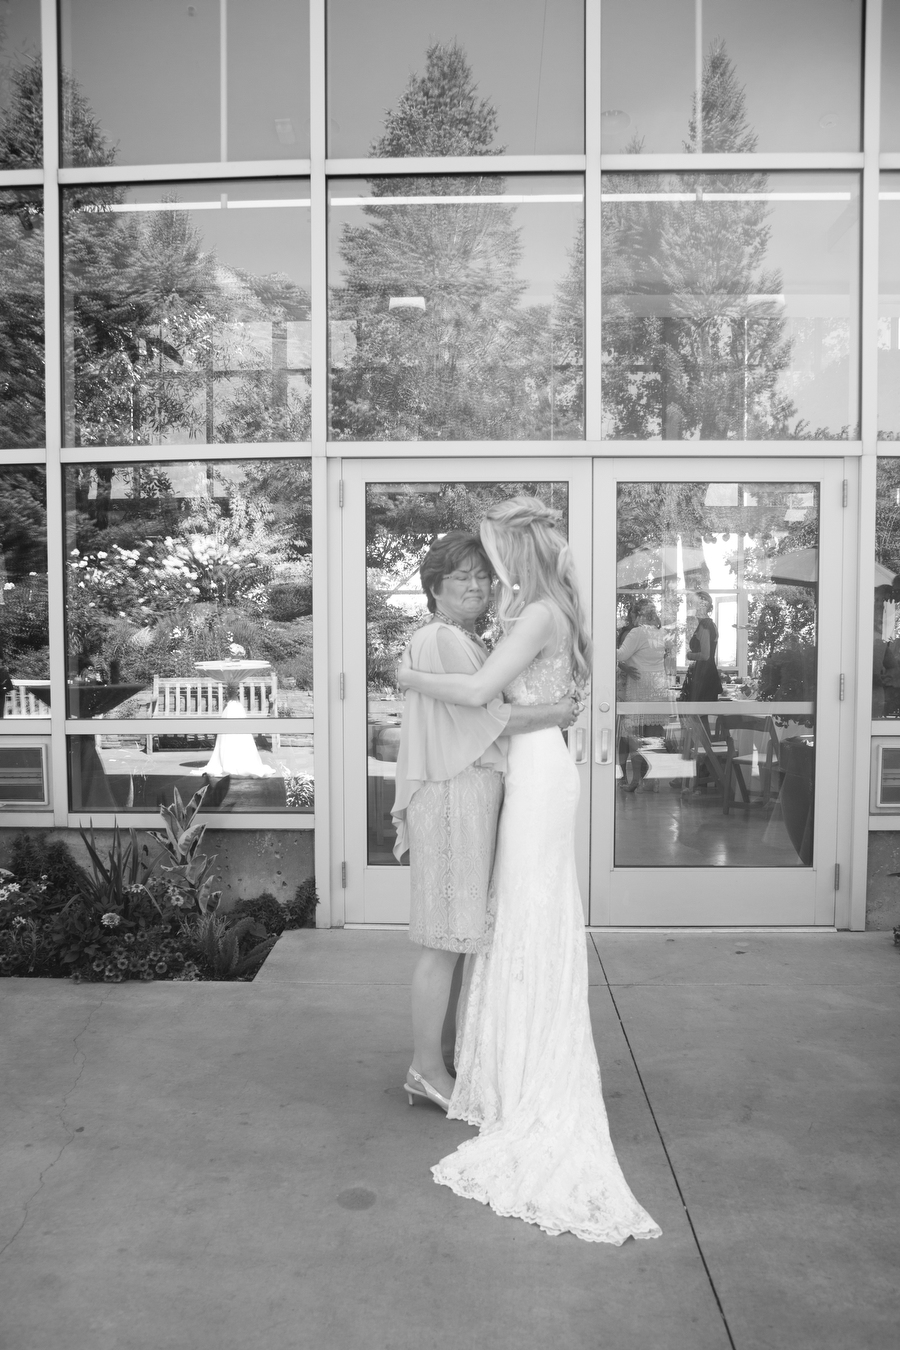 MARIACORONAPHOTOGRAPHY_WEDDING_UTAH_0209.JPG